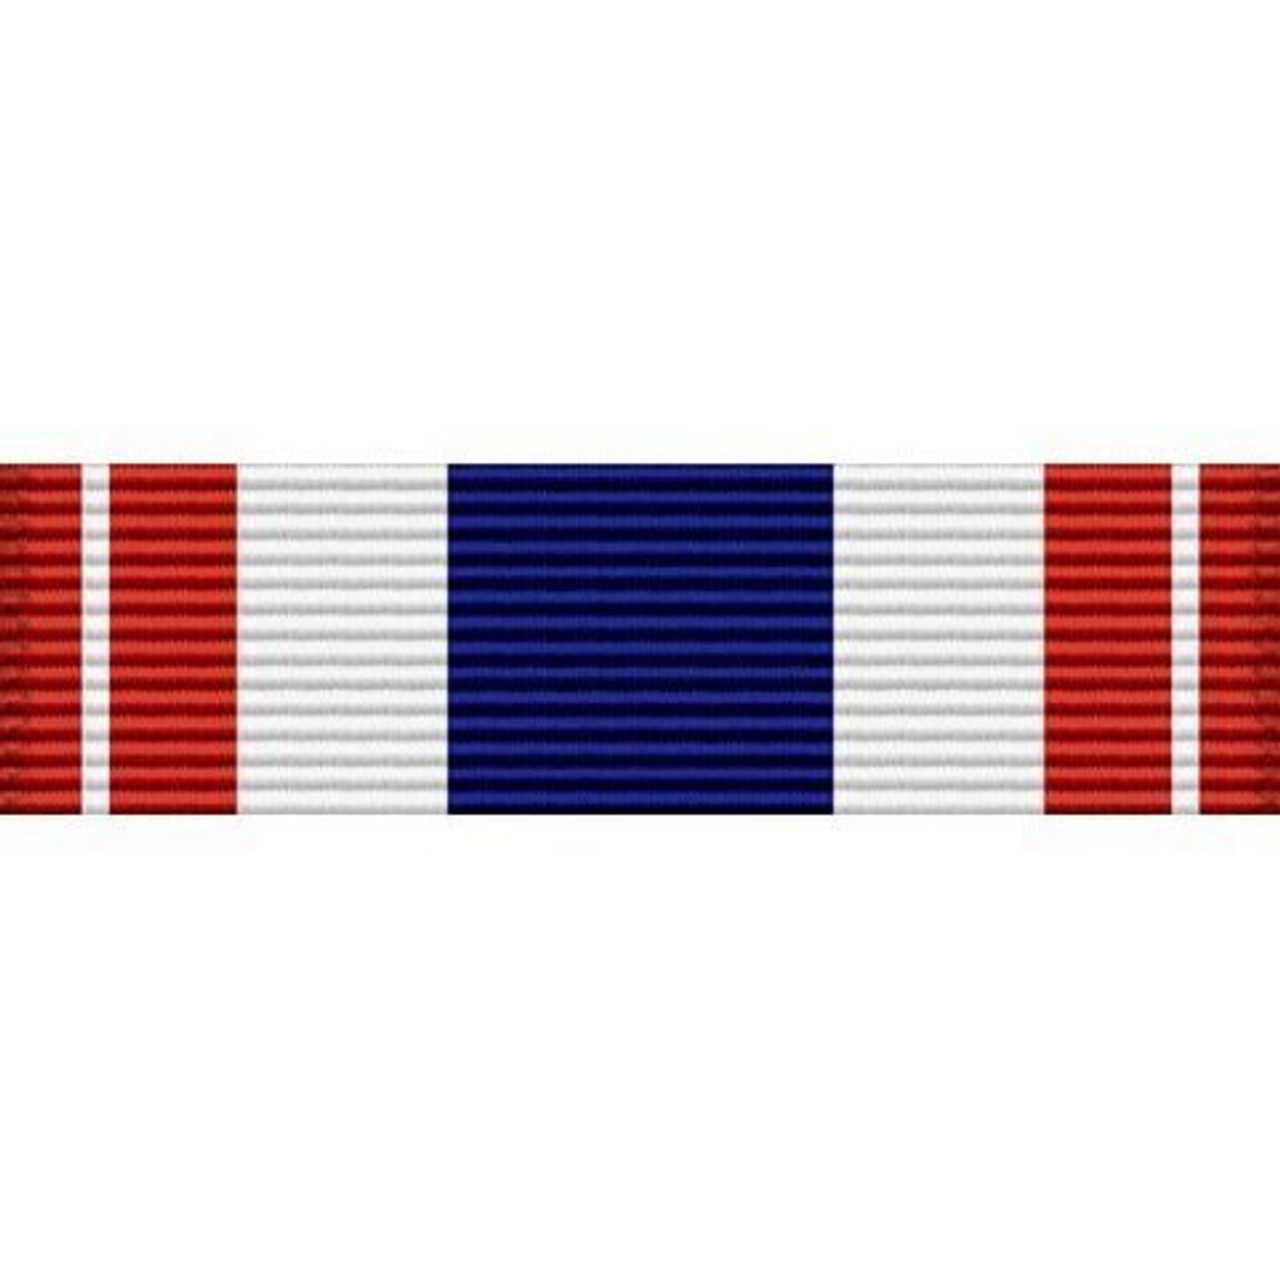 Air Force Meritorious Unit Award Streamer